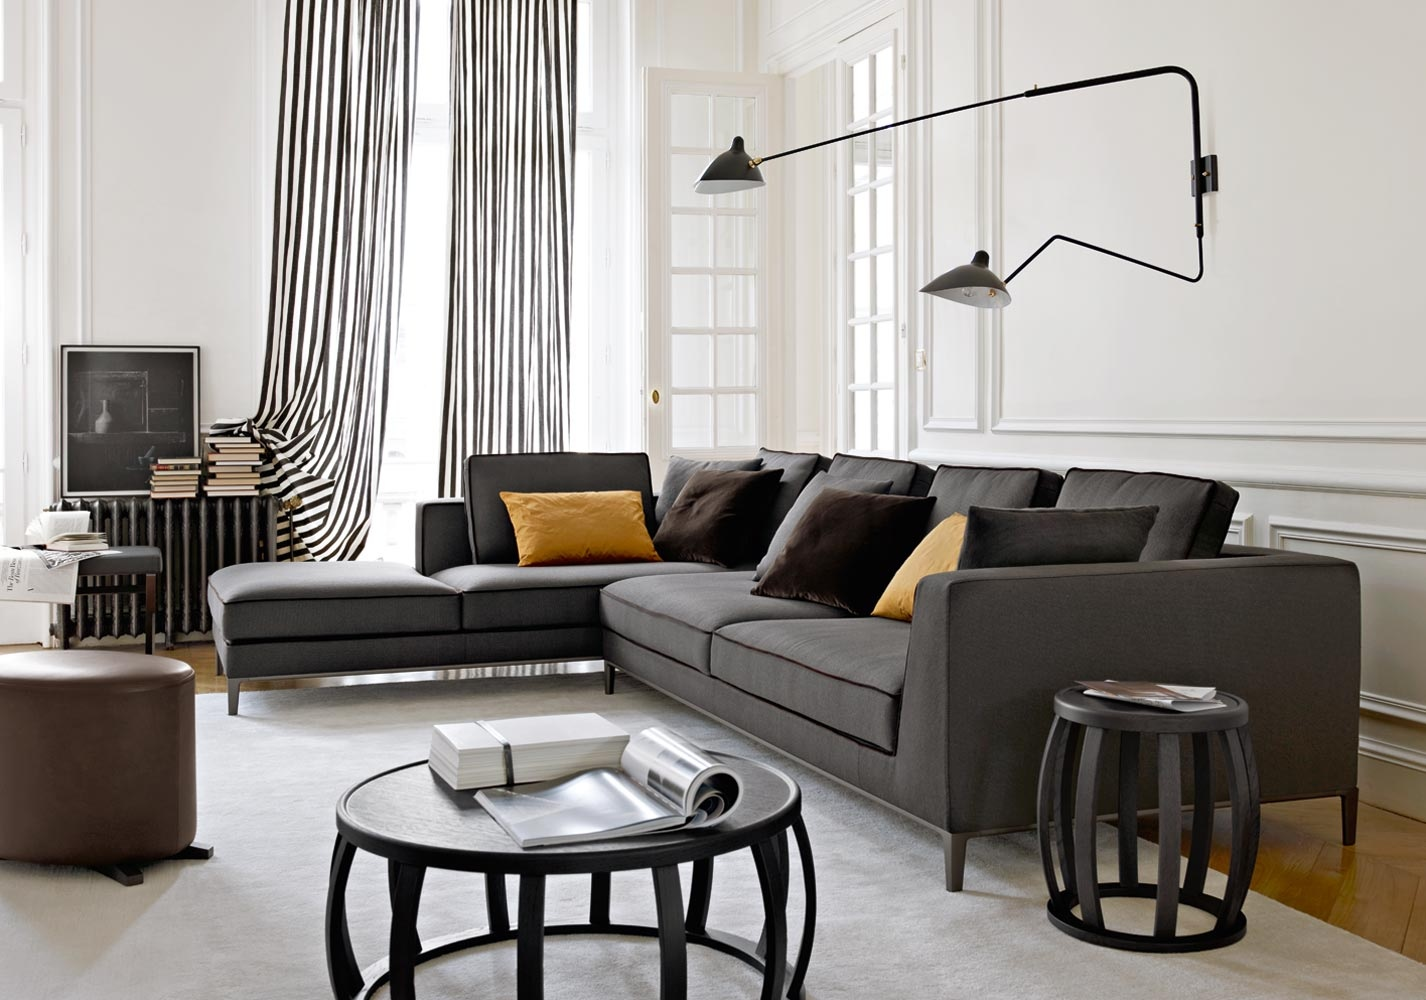 Maxalto Sofa Rund Modern Furnishing From B Andb Italia